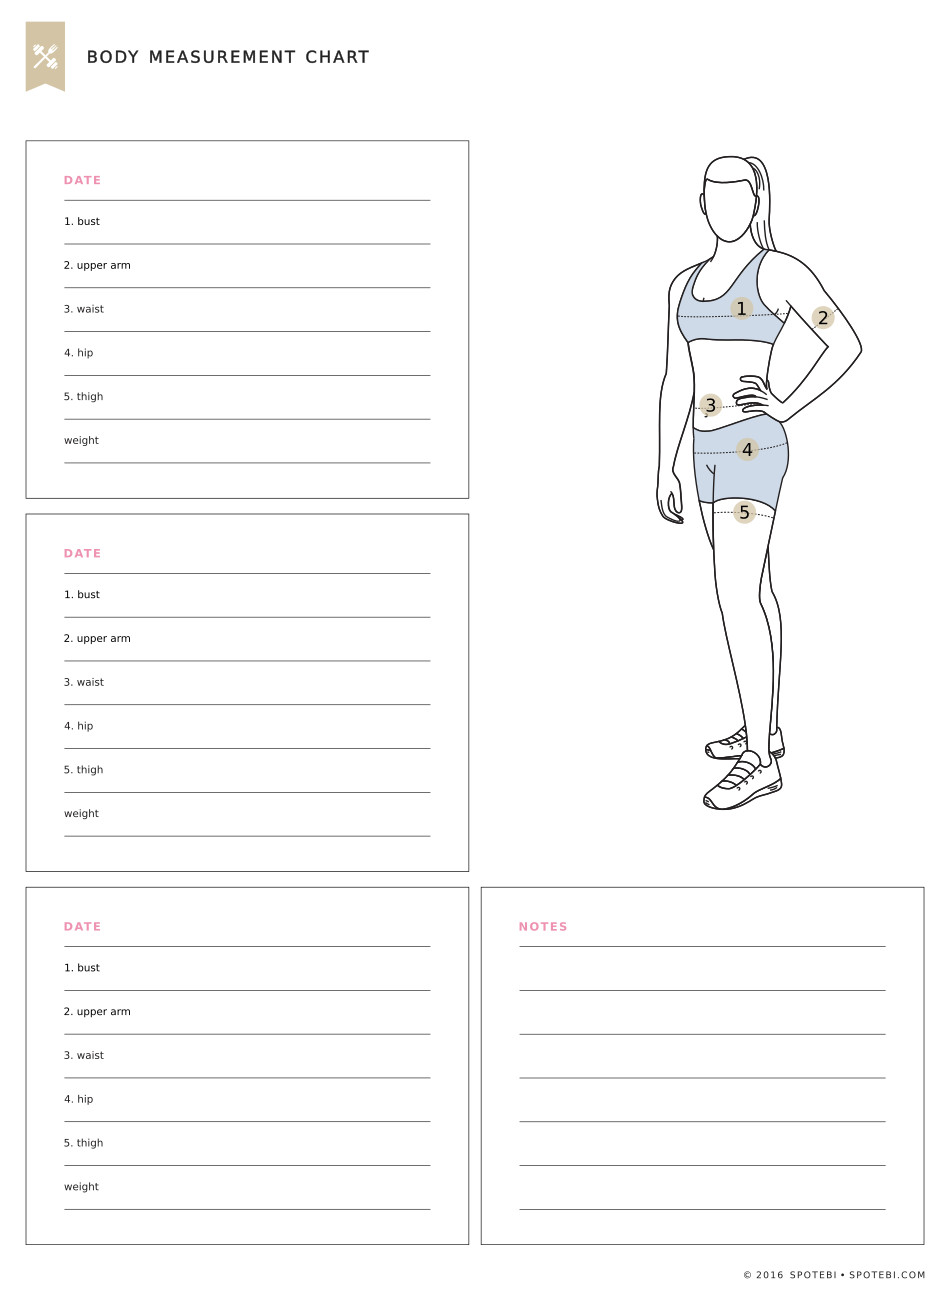 Body Measurement Chart | Fitness Tracker